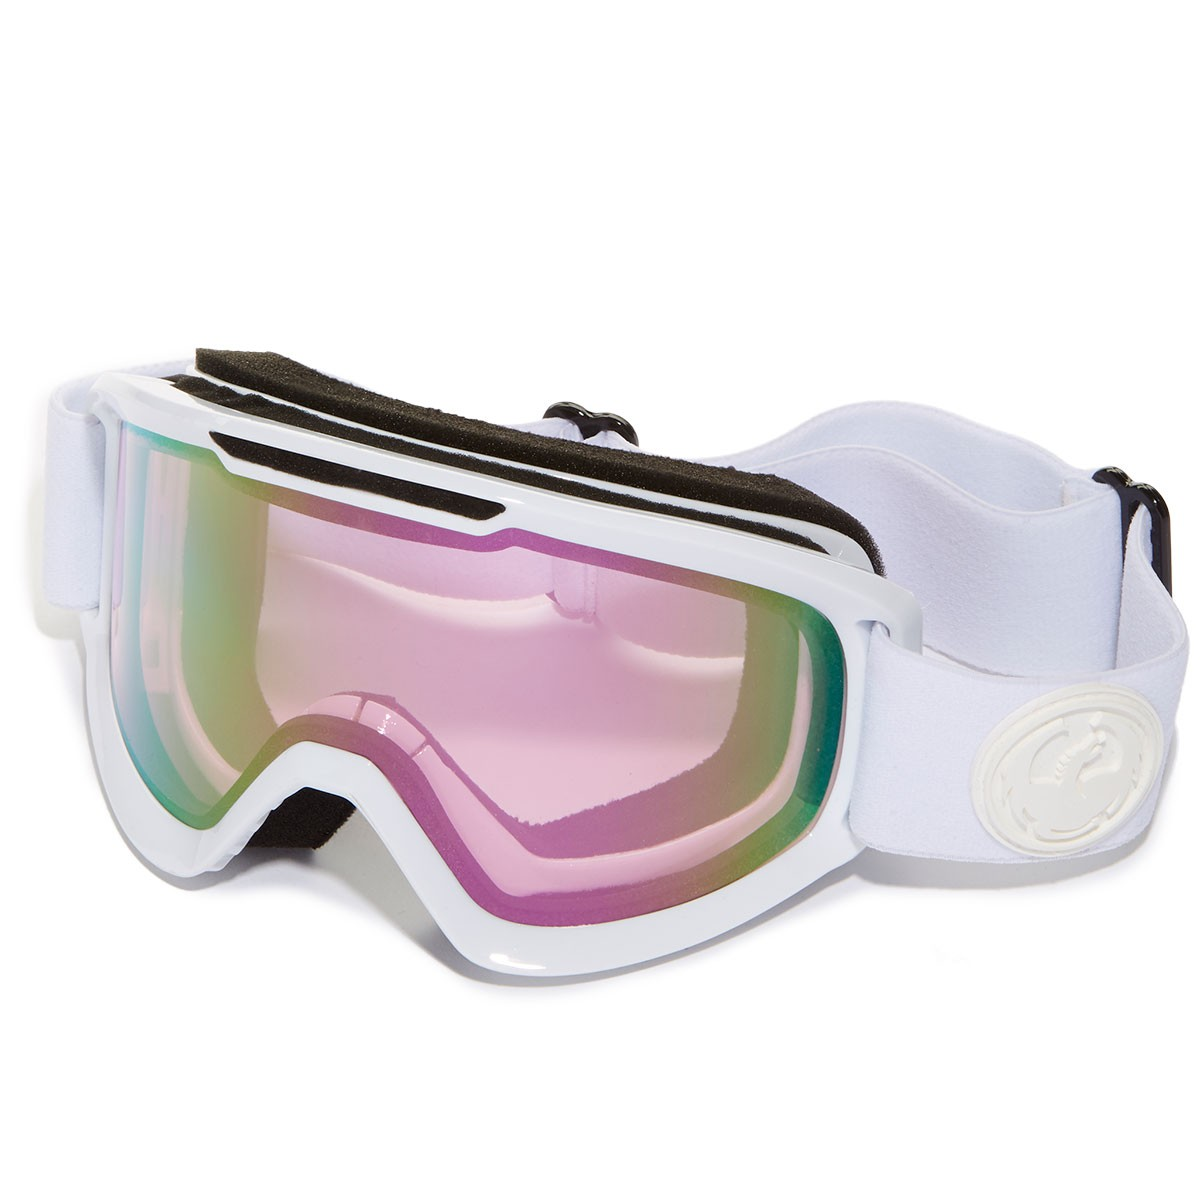 Dragon DX2 Snowboard Goggles - Whiteout/Pink Ion